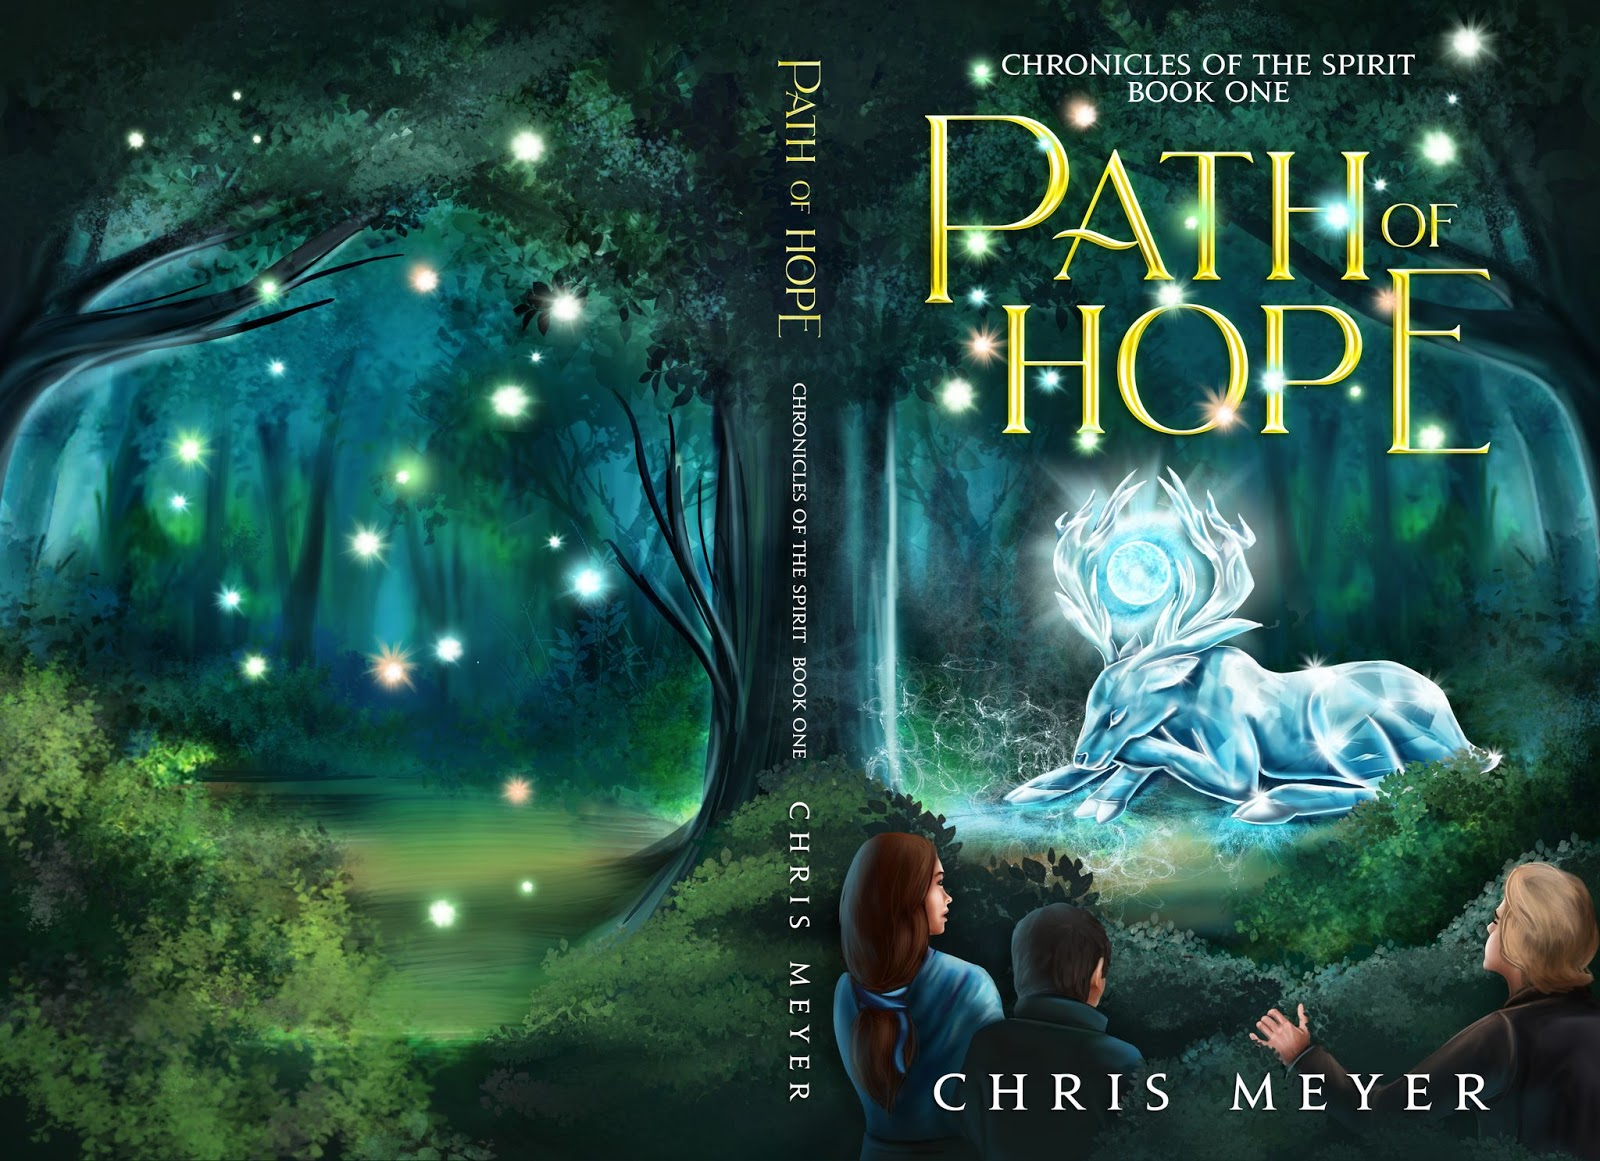 Path of Hope by Chris Meyer as an example of children's book cover design with nostalgic style